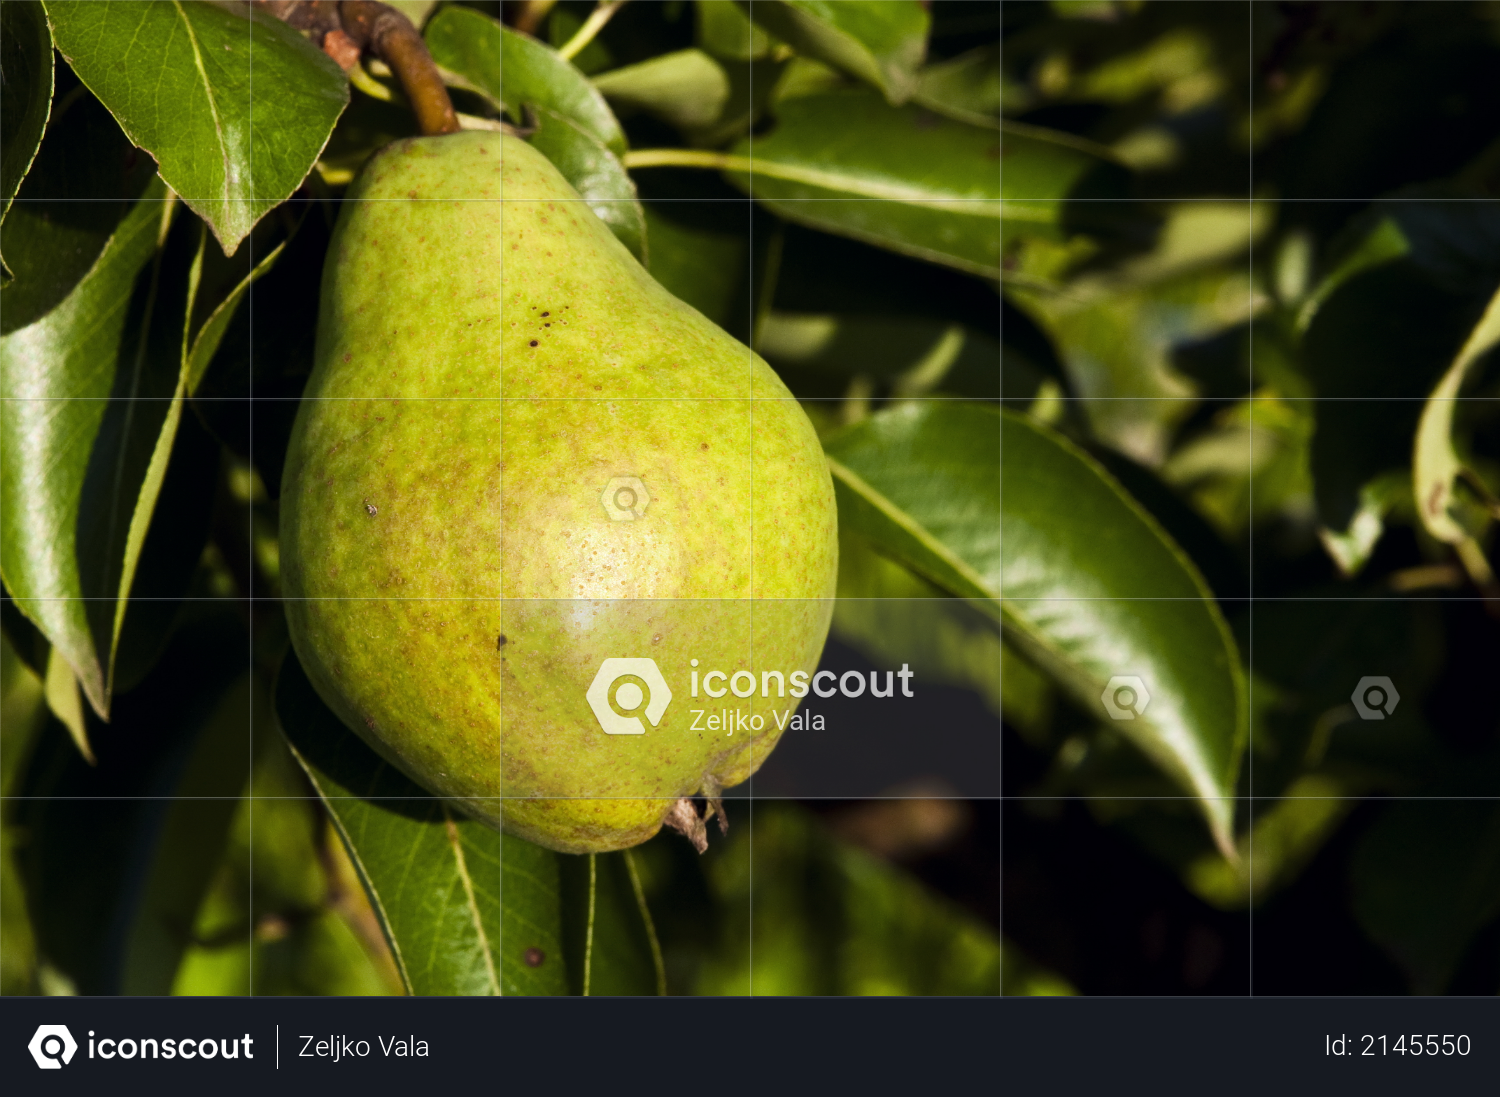 Green pear hanging on a tree with leaves in the background Photo